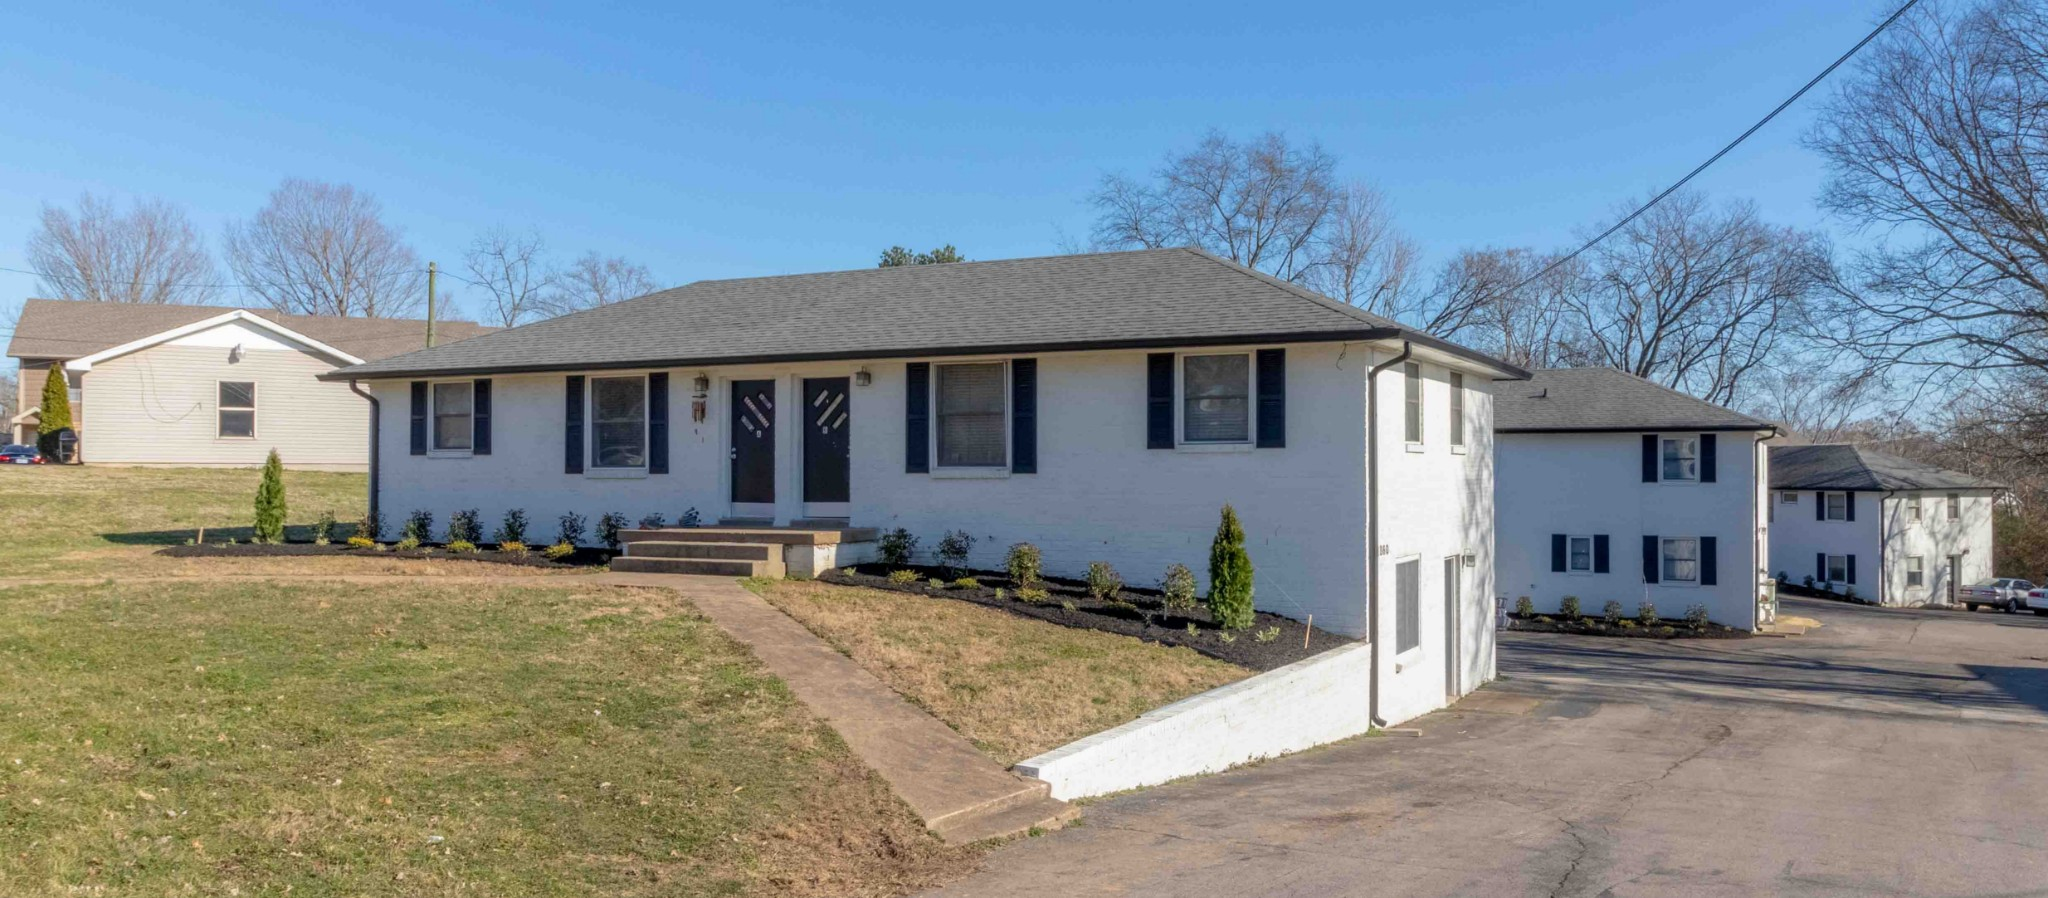 1860 MEMORIAL DRIVE Property Photo - Clarksville, TN real estate listing